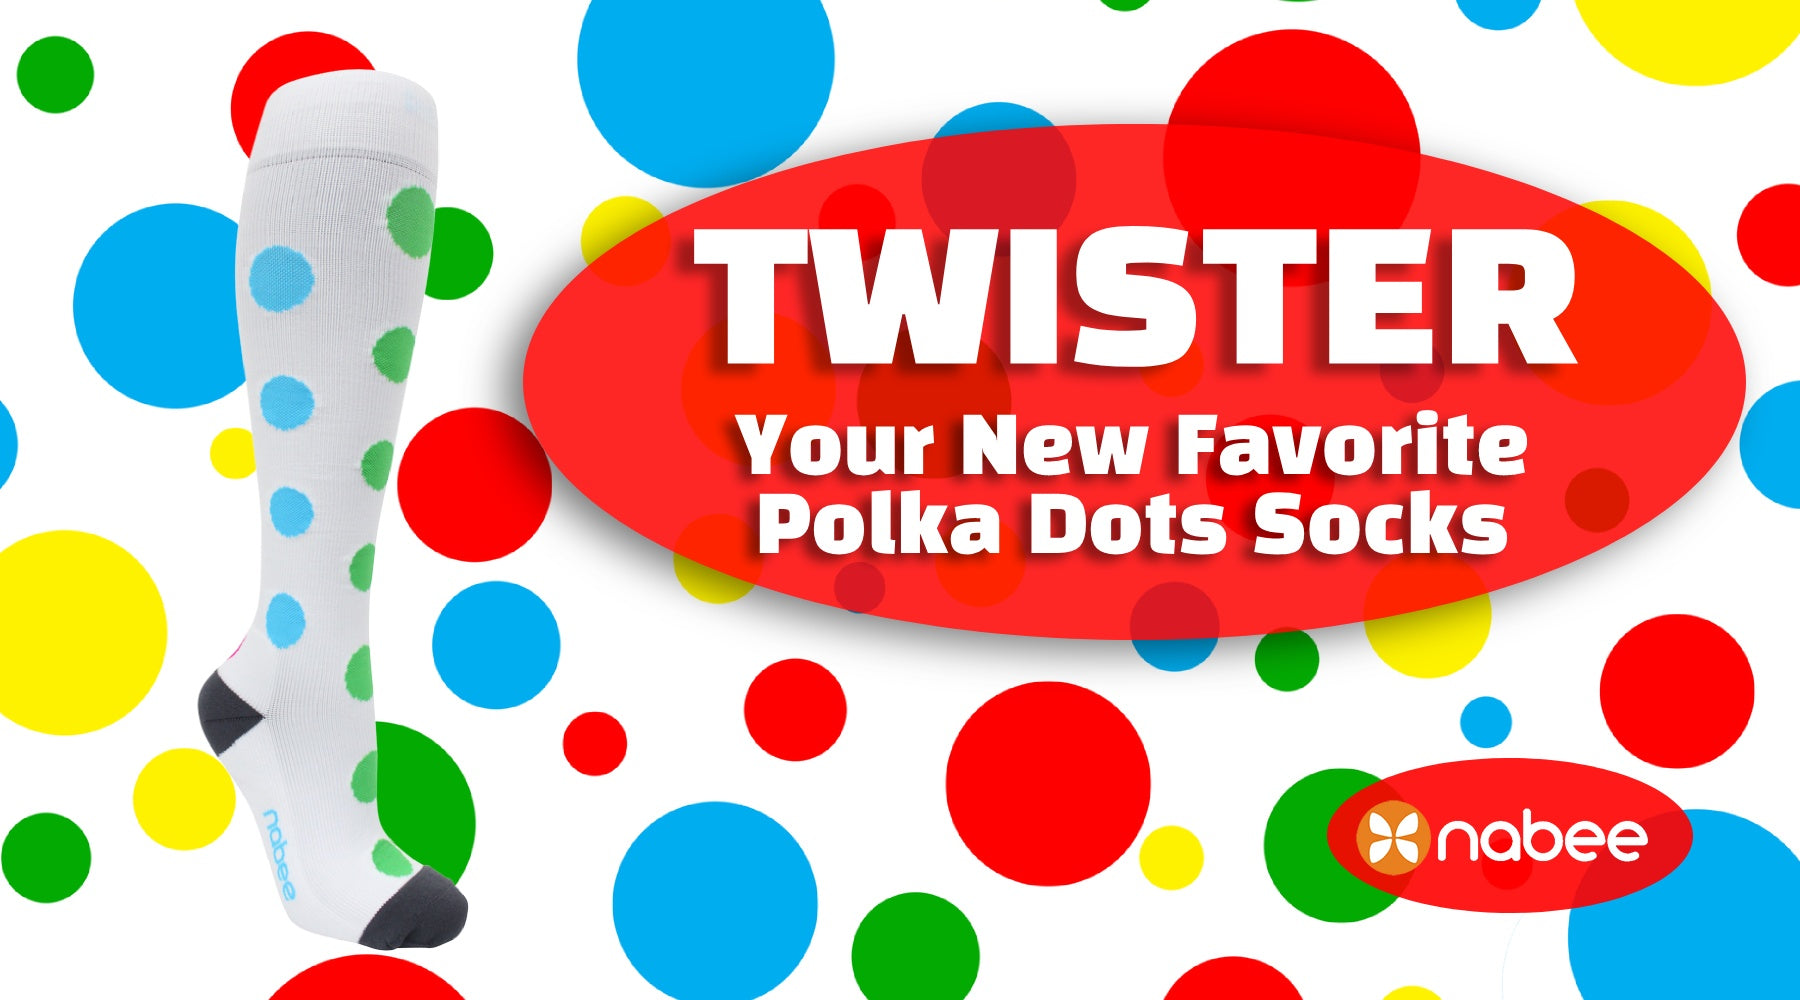 Twister - Your New Favorite Polka Dot Socks!